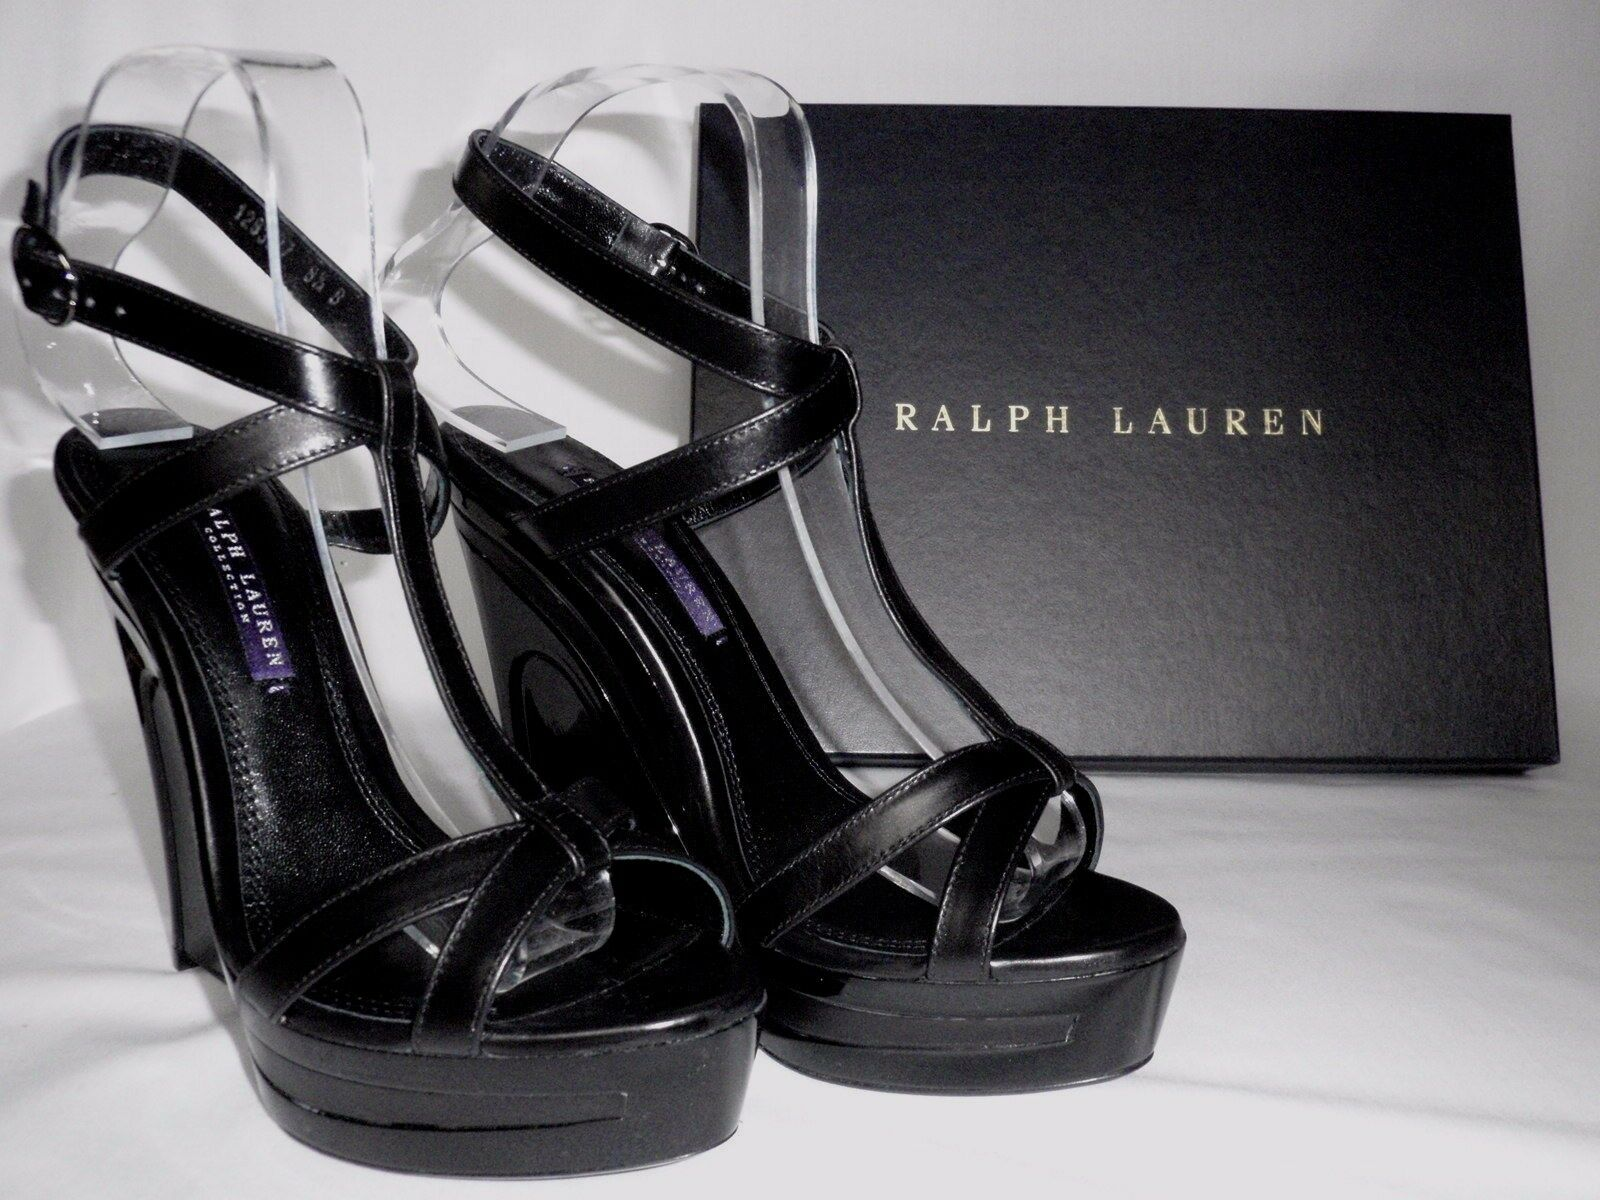 New RALPH LAUREN  Ladies ATARA nero Leather Wedge Sandals scarpe UK 4 EU 37  distribuzione globale